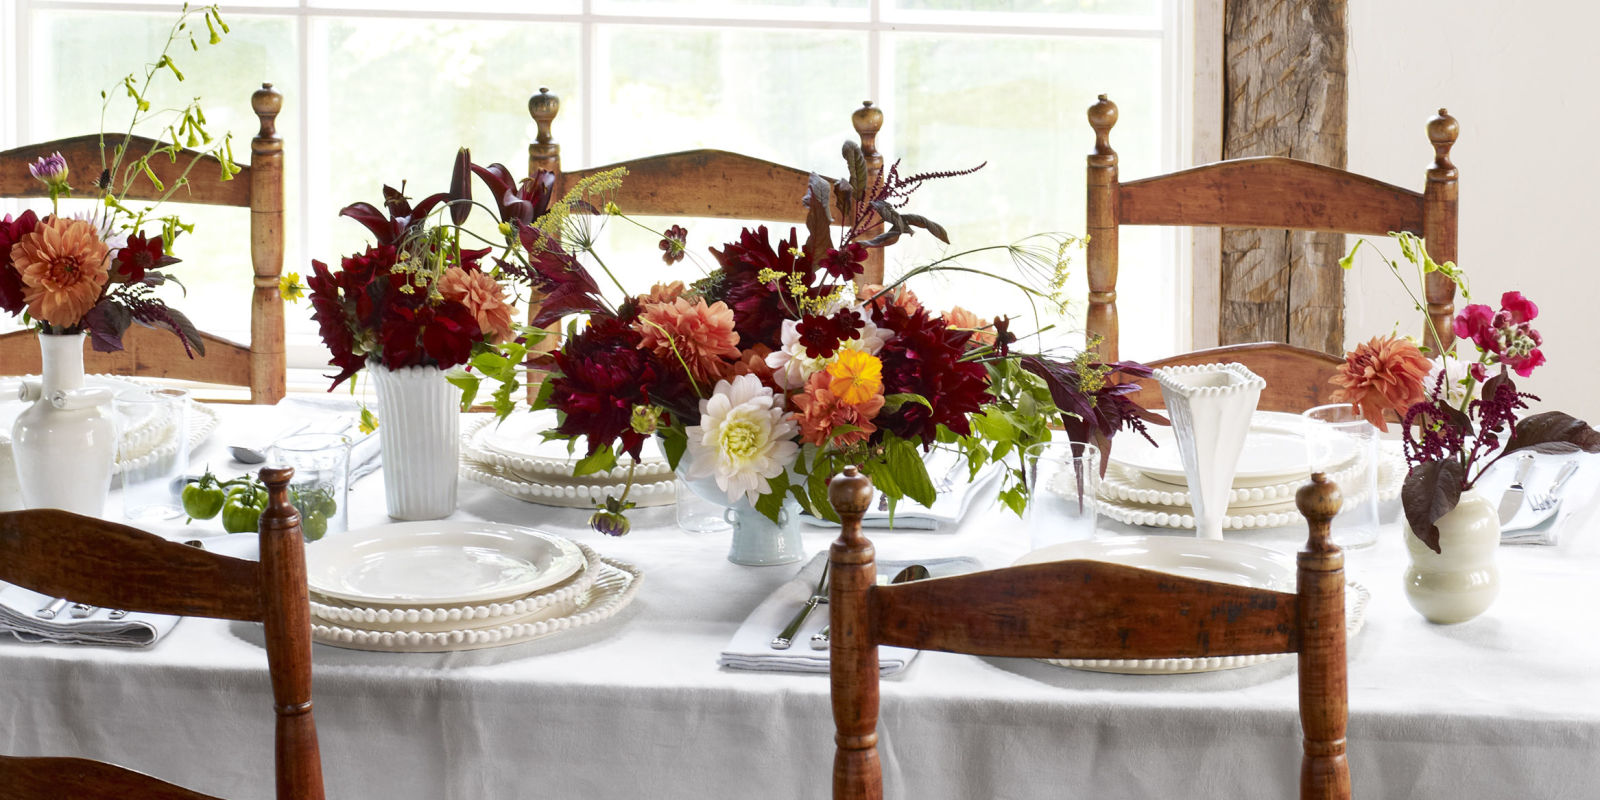 Tablescapes table decorating ideas - elegant table decor and settings